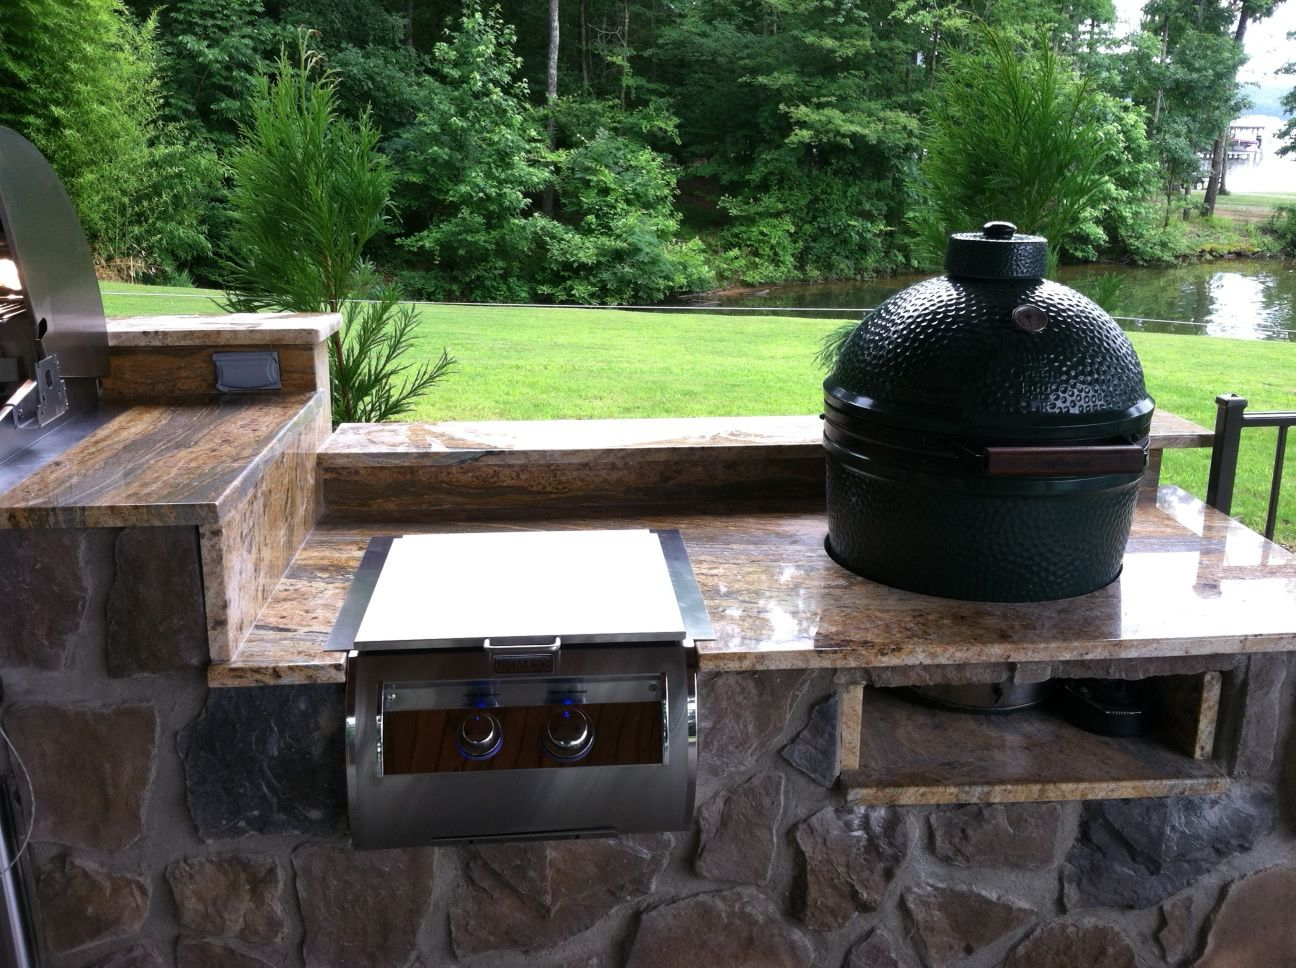 Fine S Gas Hearth And Patio Gas Appliances Outdoor Kitchen Big Green Egg Outdoor Kitchen Outdoor Kitchen Appliances